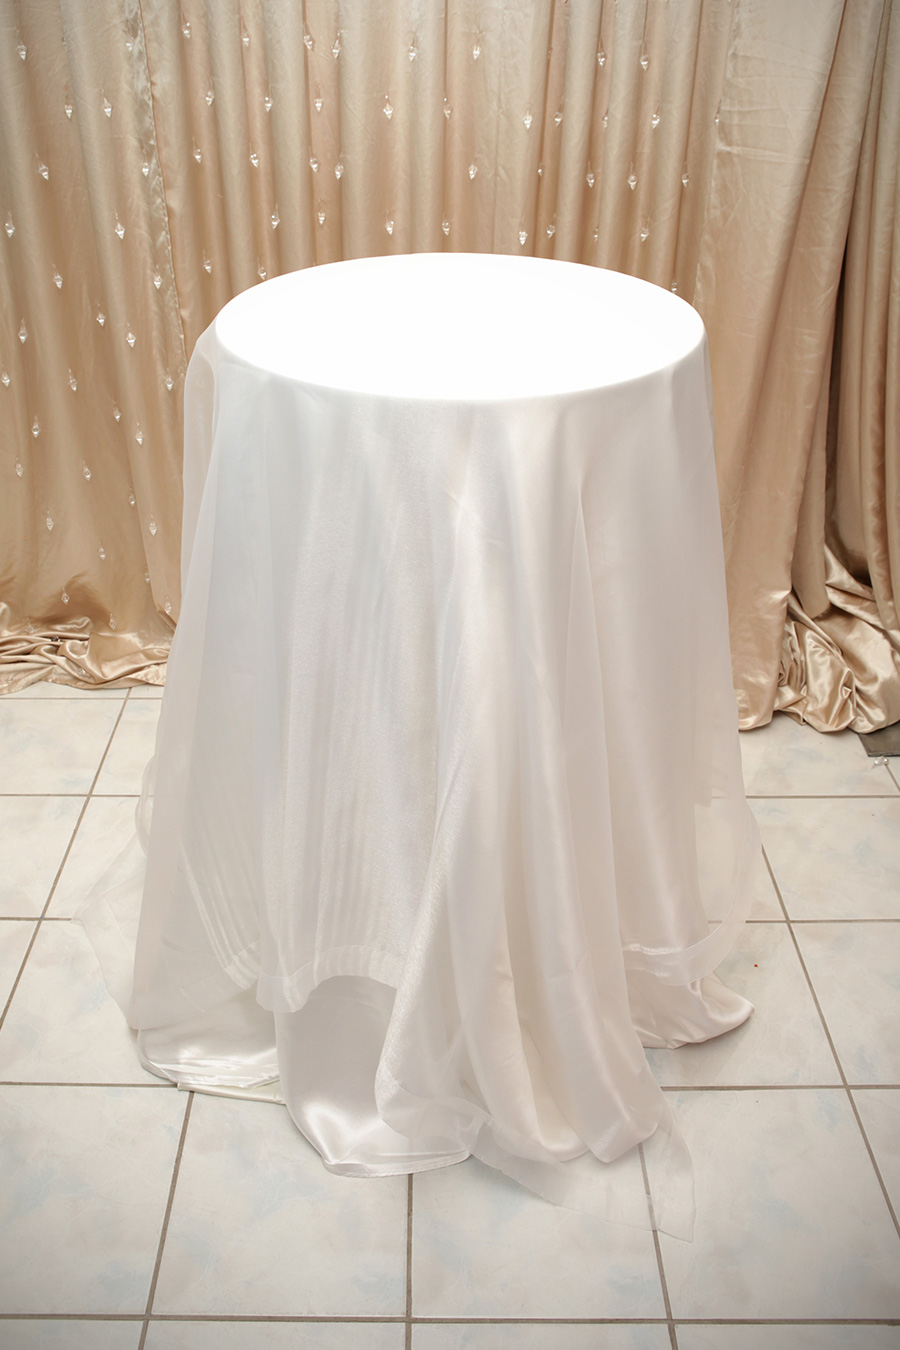 Sheer Overlay Table Cover White